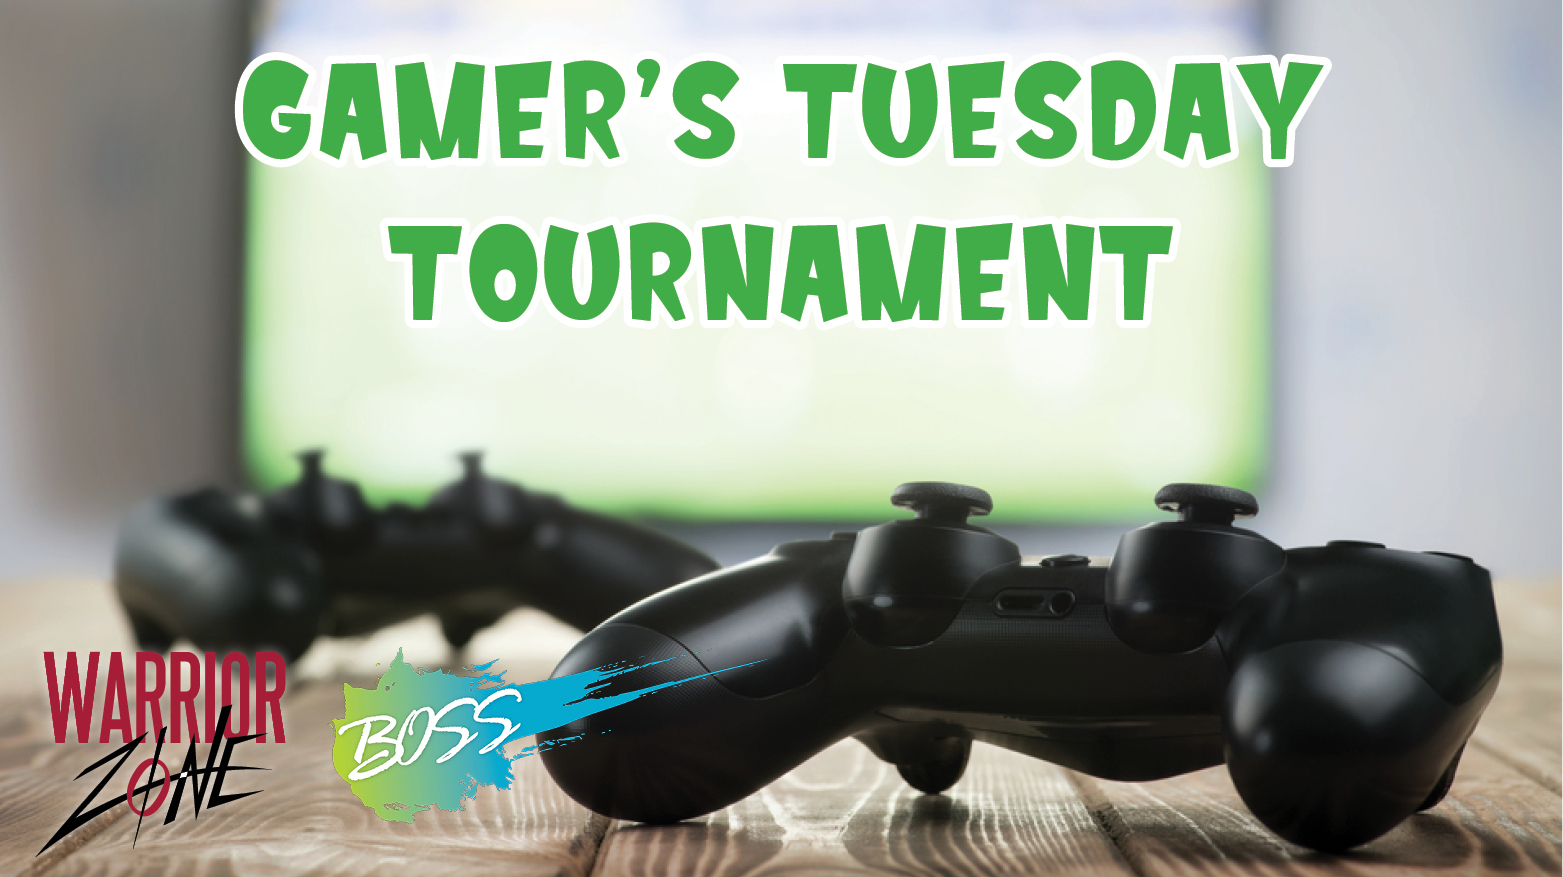 Gamers' Tuesdays @ Warrior Zone (Hosted by BOSS)